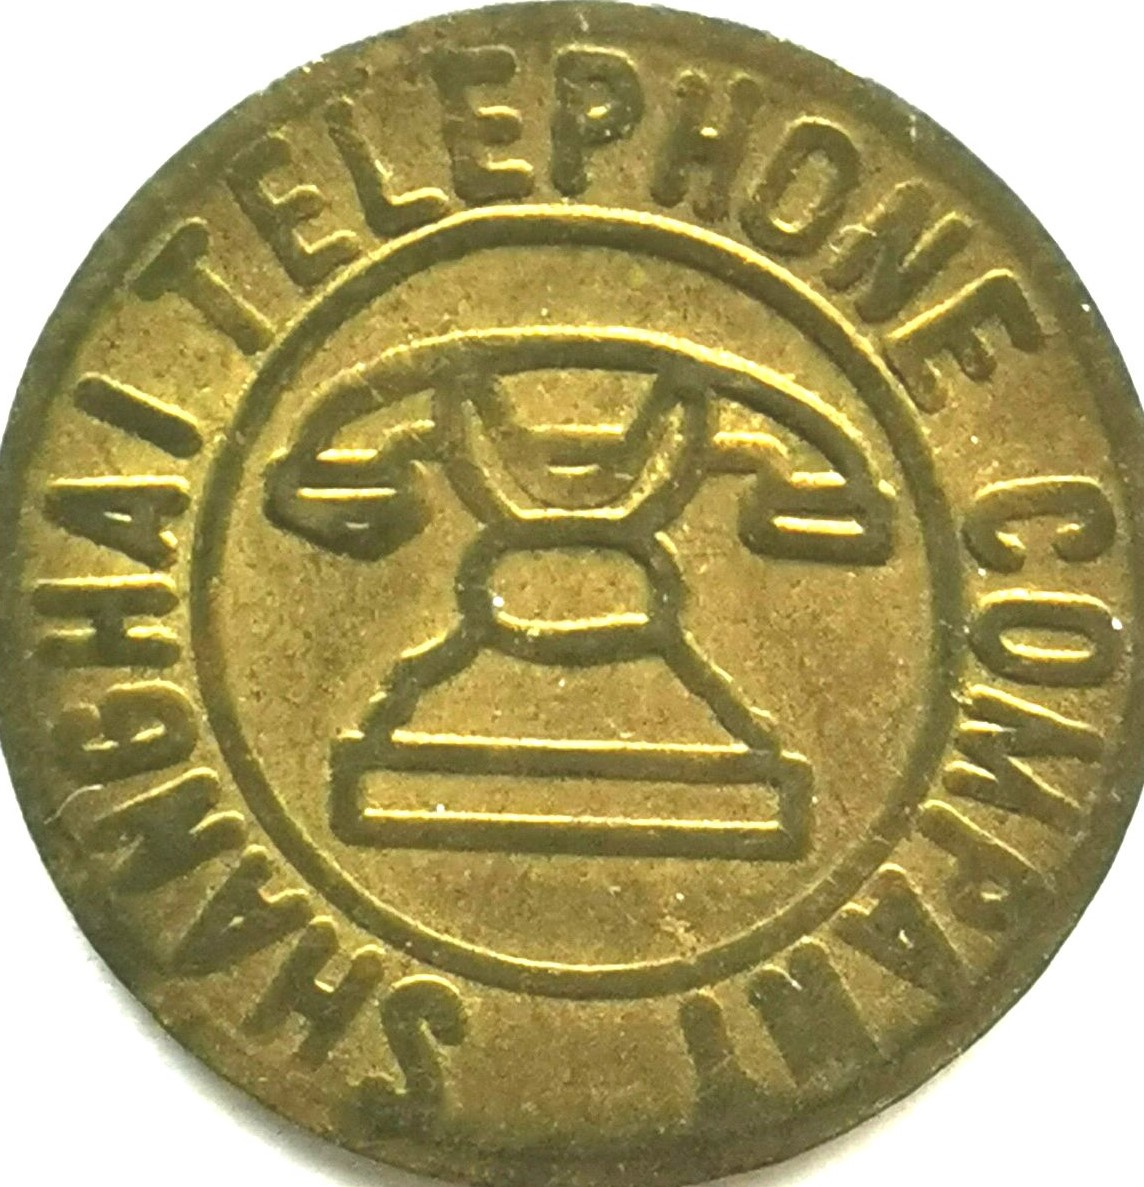 BT001, Shanghai Telephone Token, 1930's VF